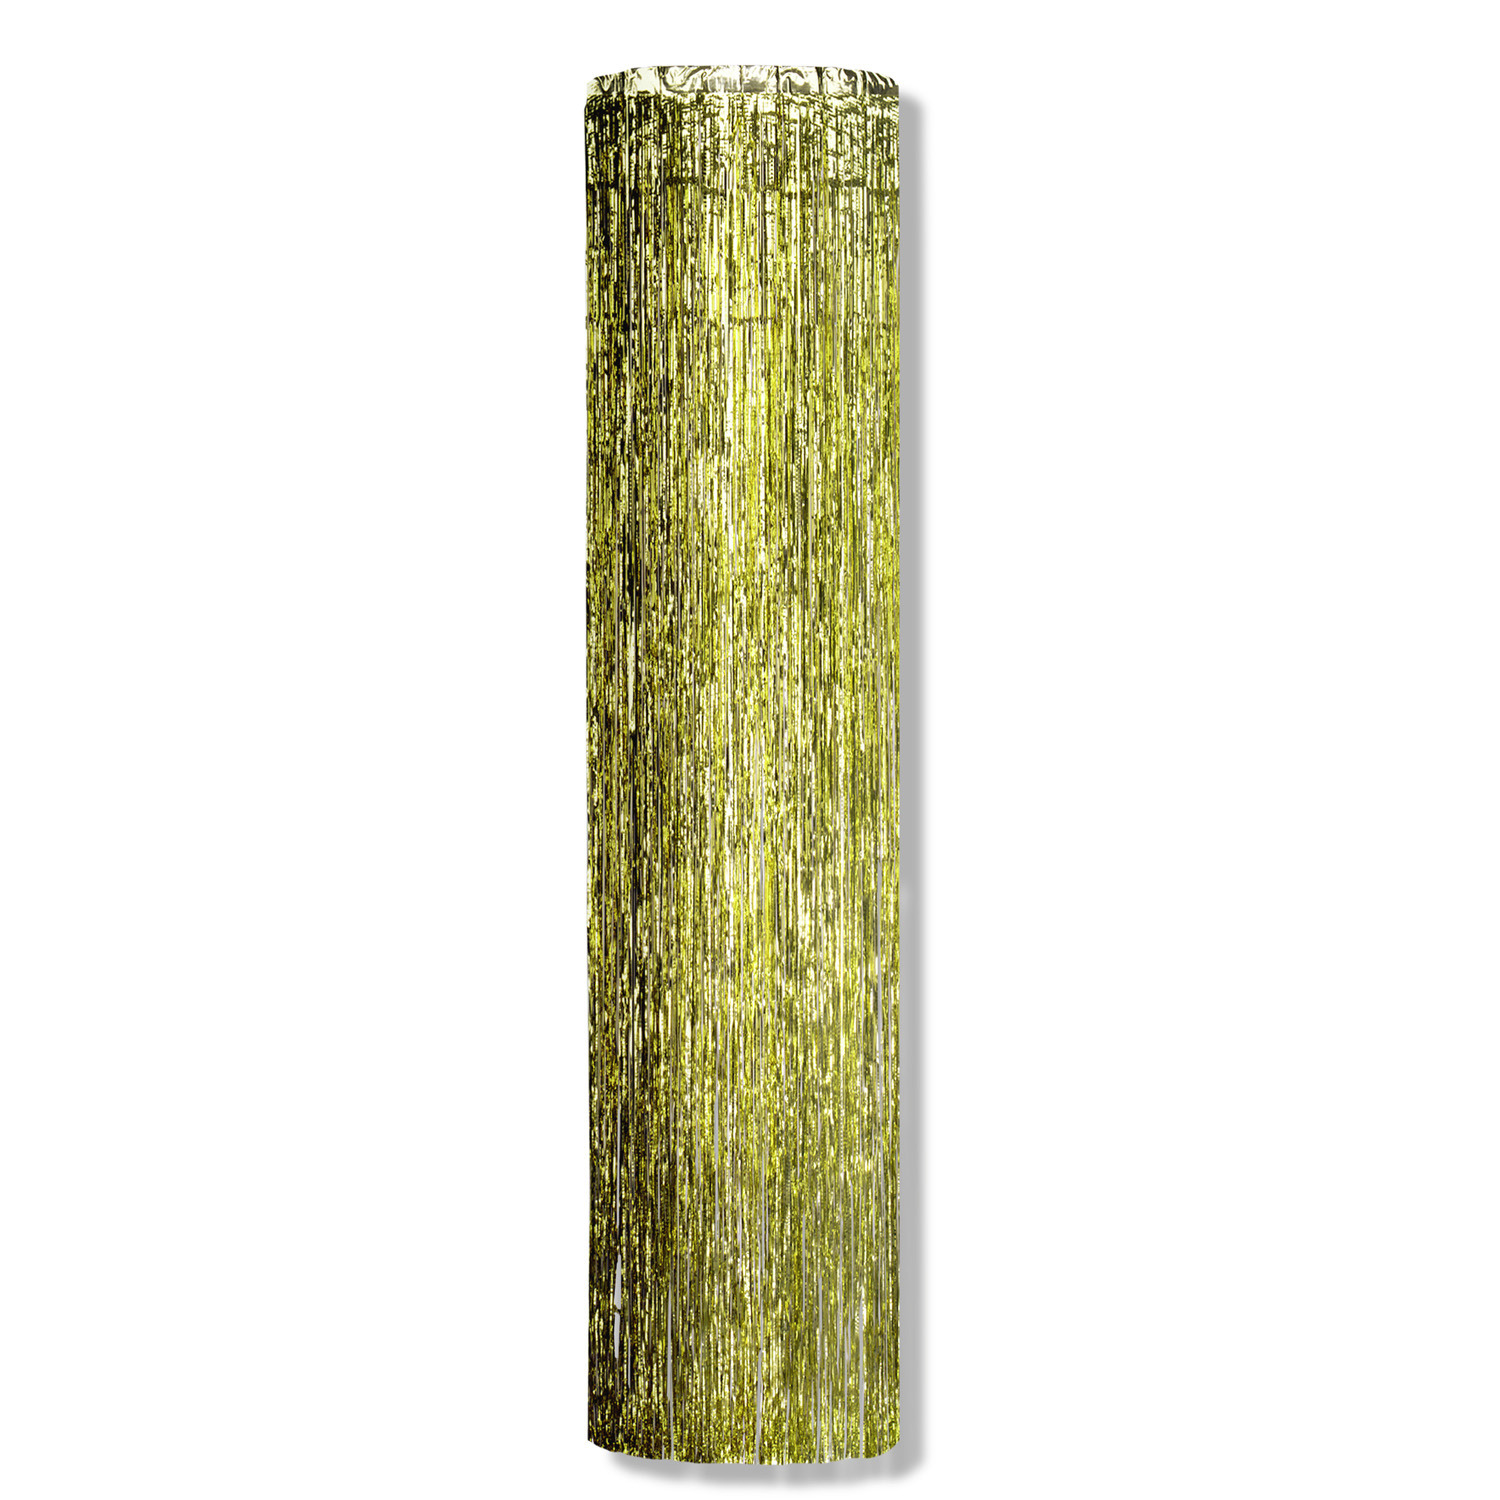 1-Ply Gold Gleam N Column (Pack of 6) column. gleam, gold, decoration, new years eve, st. patricks day, wholesale, inexpensive, bulk